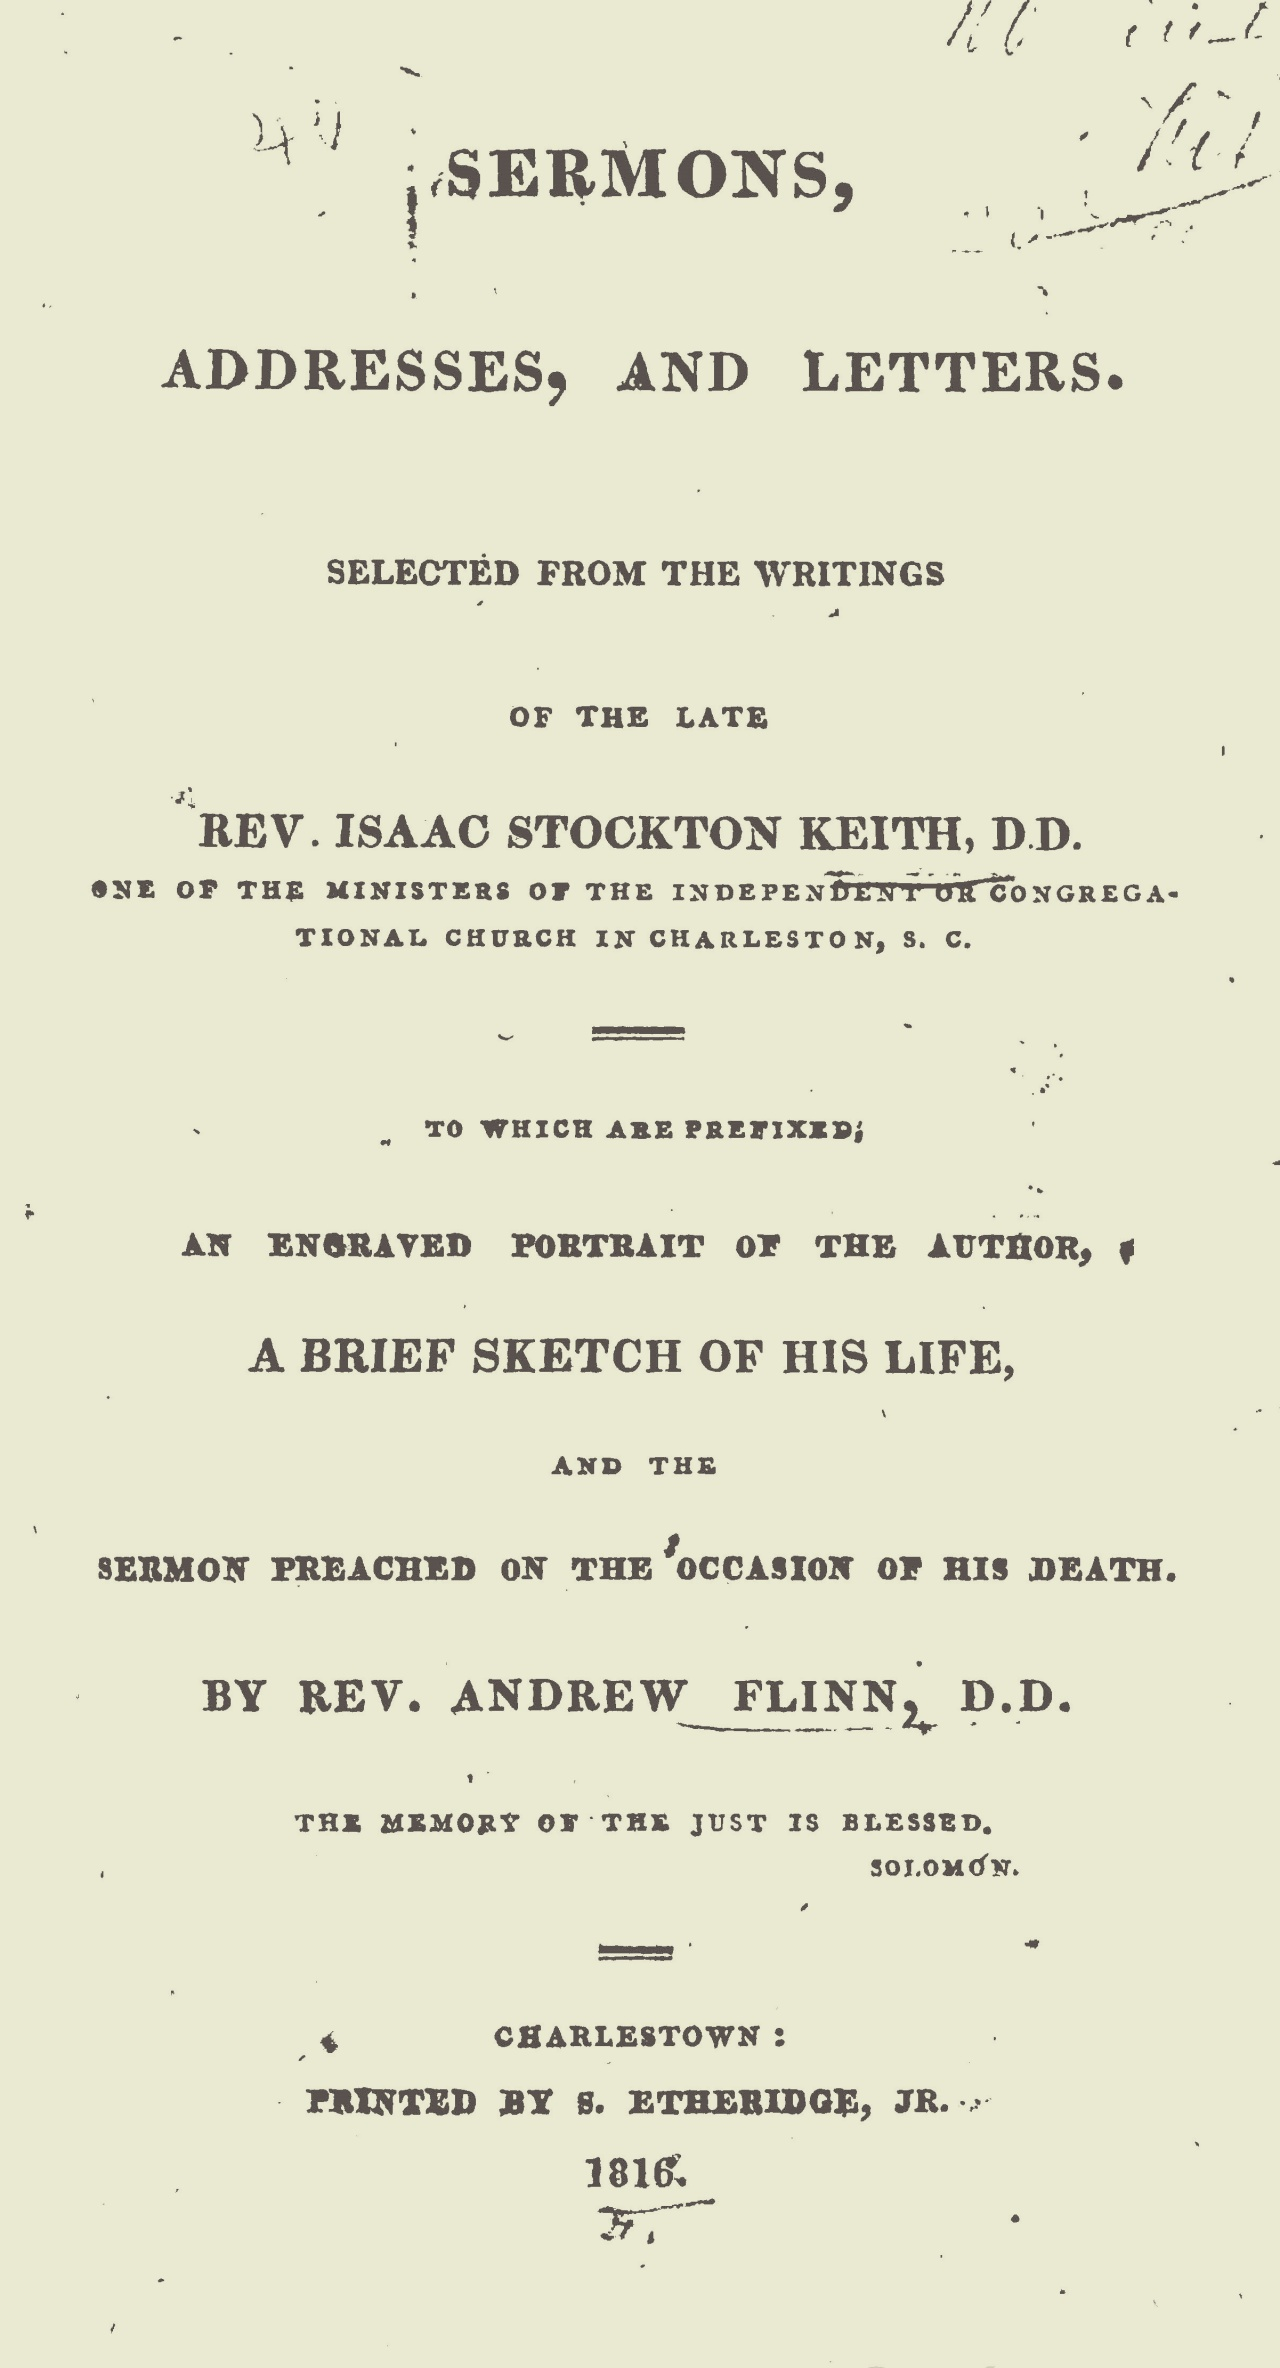 Keith, Isaac Stockton, Sermons, Addresses, and Letters Title Page.jpg